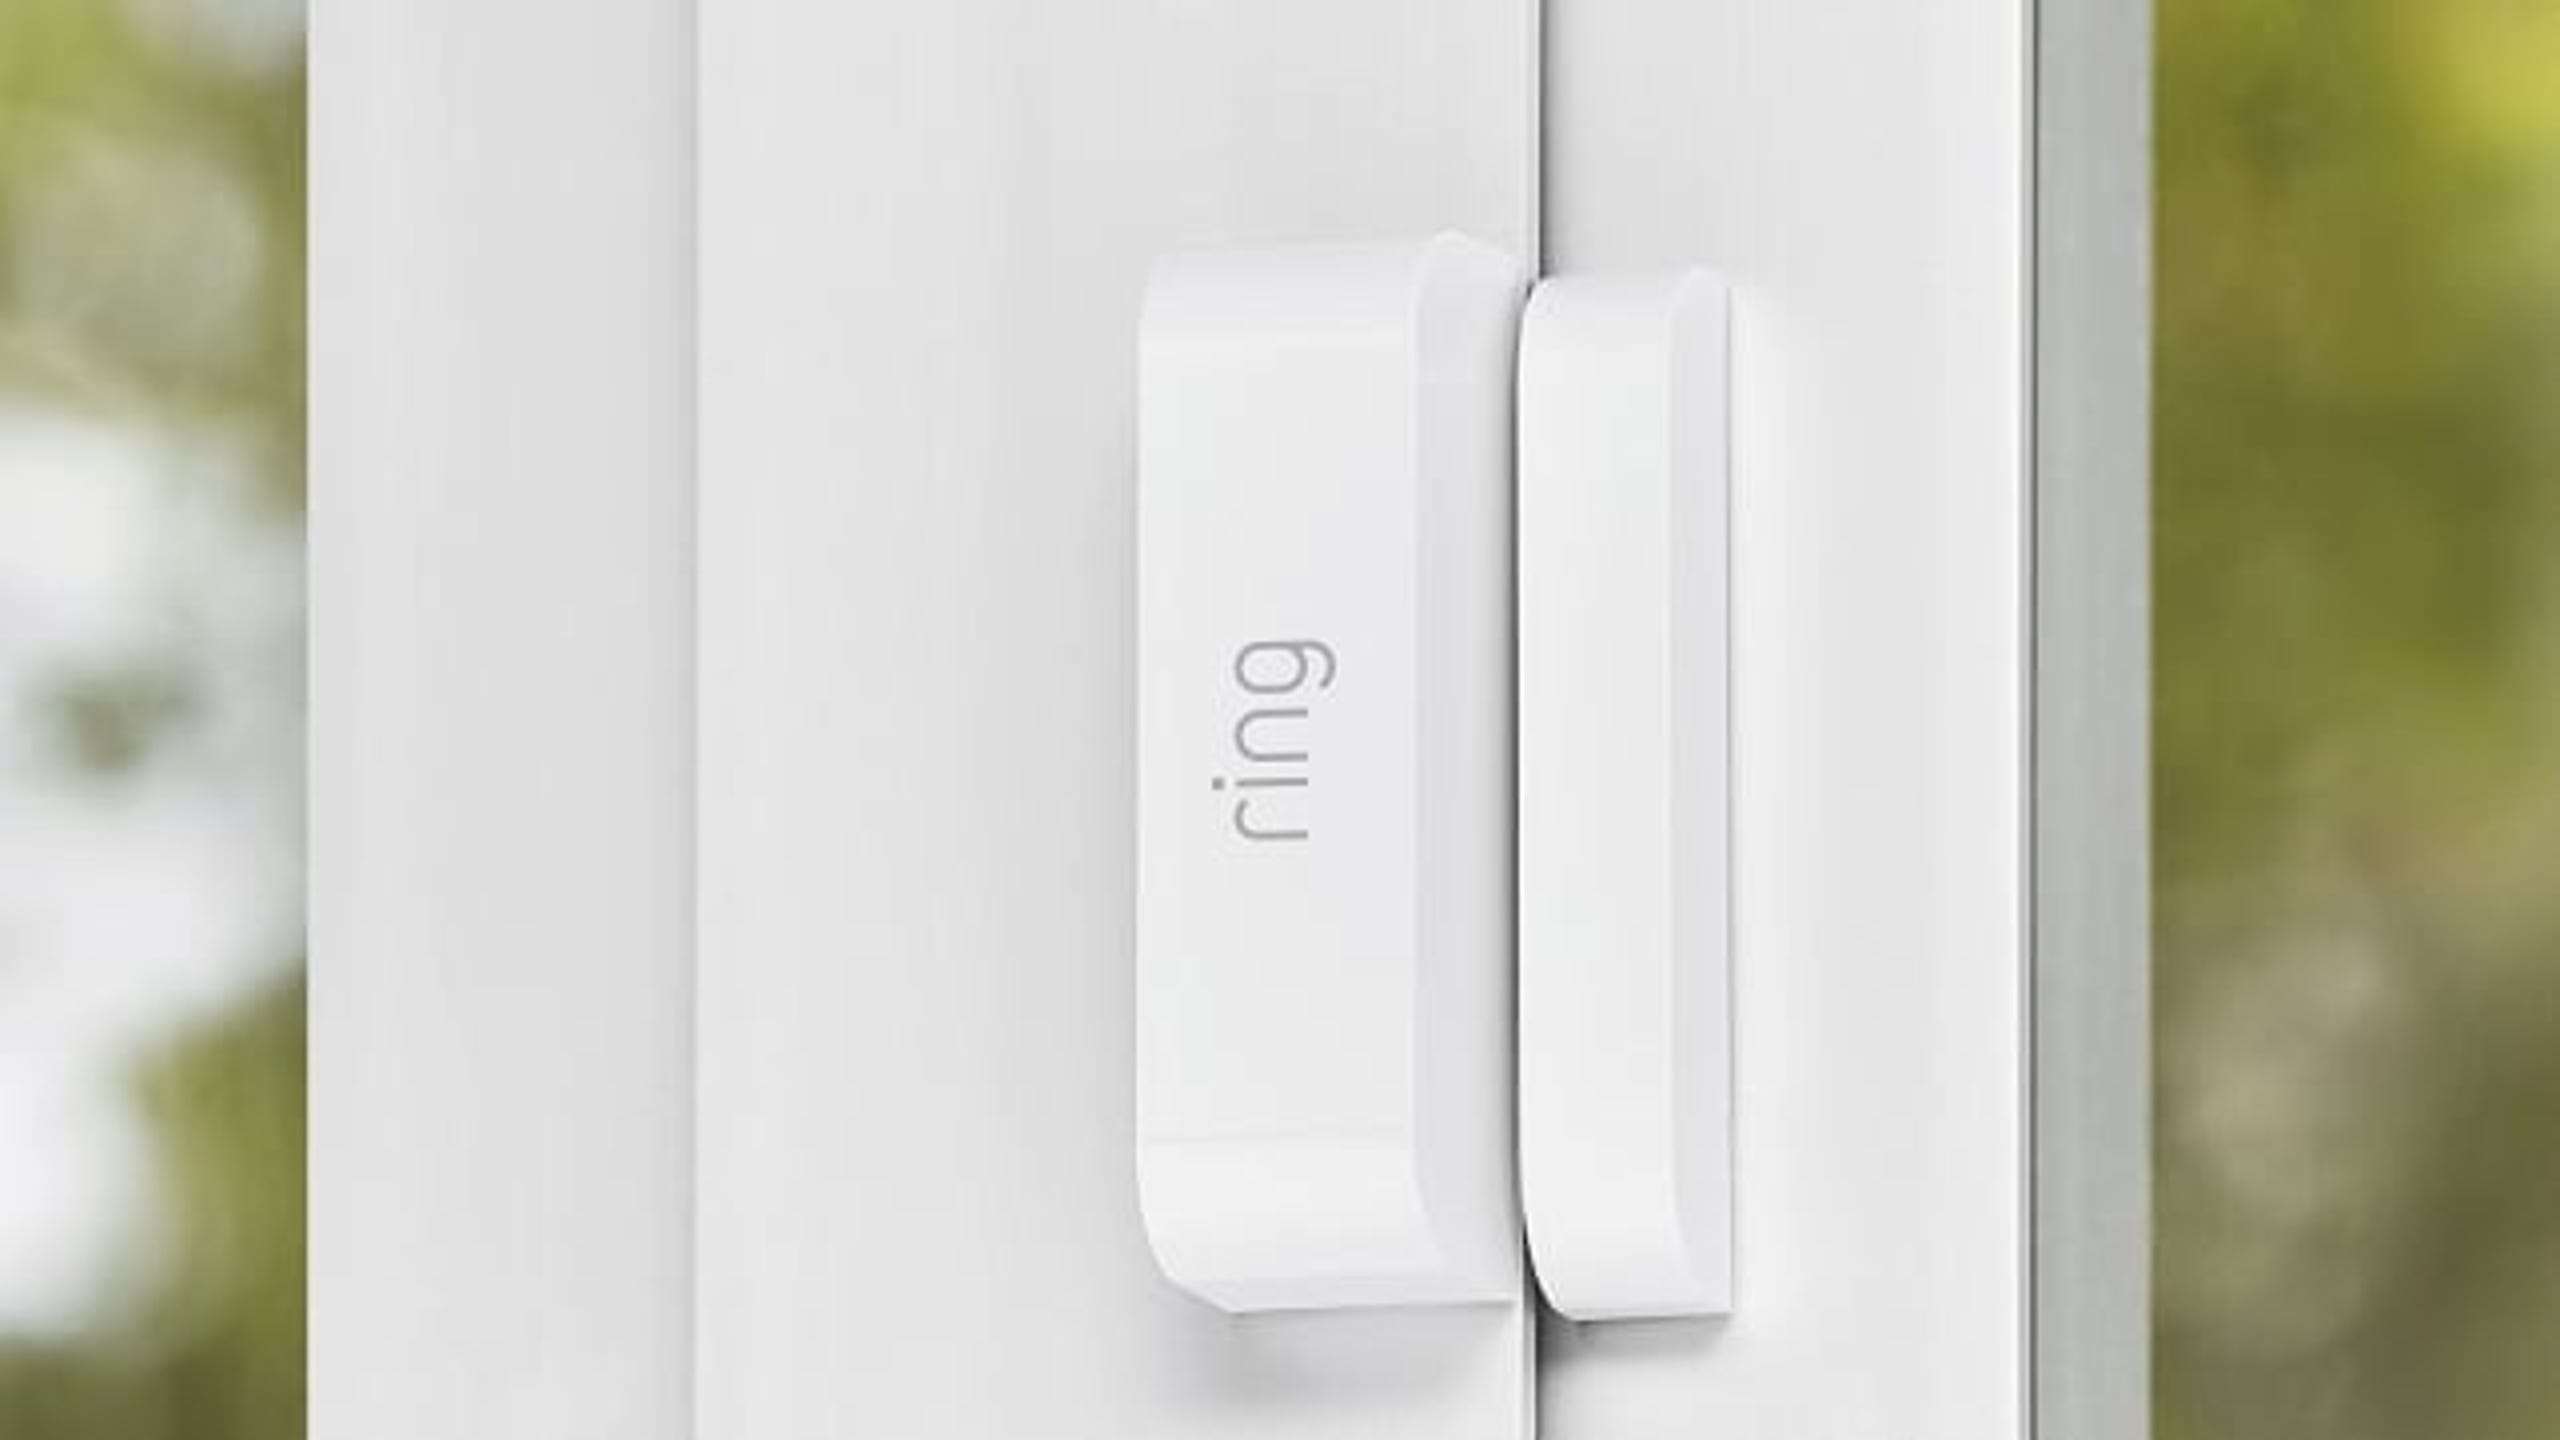 "Security cameras and smart doorbells make your home safer, but these Ring window and door sensors add an extra layer of protection, alerting you when they&rsquo;re left open&mdash;and it&rsquo;s helpful if it start raining! (<a href=""https://www.amazon.com/Ring-Contact-Sensor-Alarm-White/dp/B07DNZZCPX/ref=as_li_ss_tl?crid=WNHQK6VJR8U1&amp;keywords=ring+contact+sensors+2+pack&amp;qid=1565884919&amp;s=gateway&amp;sprefix=ring+conta,aps,706&amp;sr=8-4&amp;linkCode=ll1&amp;tag=usatgallery-20&amp;linkId=a1168dafa84bdc0307113241f2105540&amp;language=en_US"">$39.99 on Amazon</a>)"